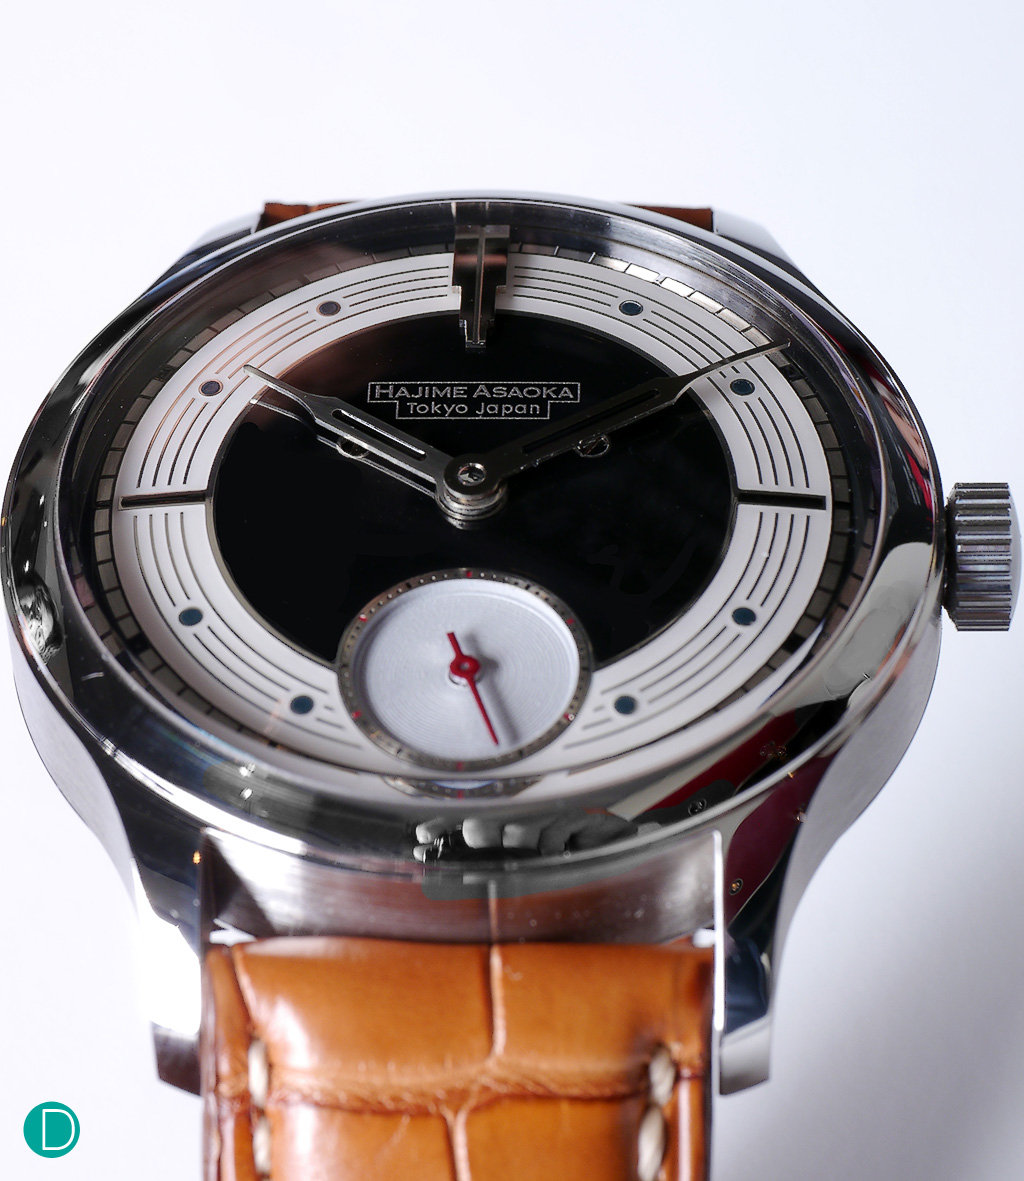 Hajime Asaoka Project Tsunami. Precious little information is available on this watch.